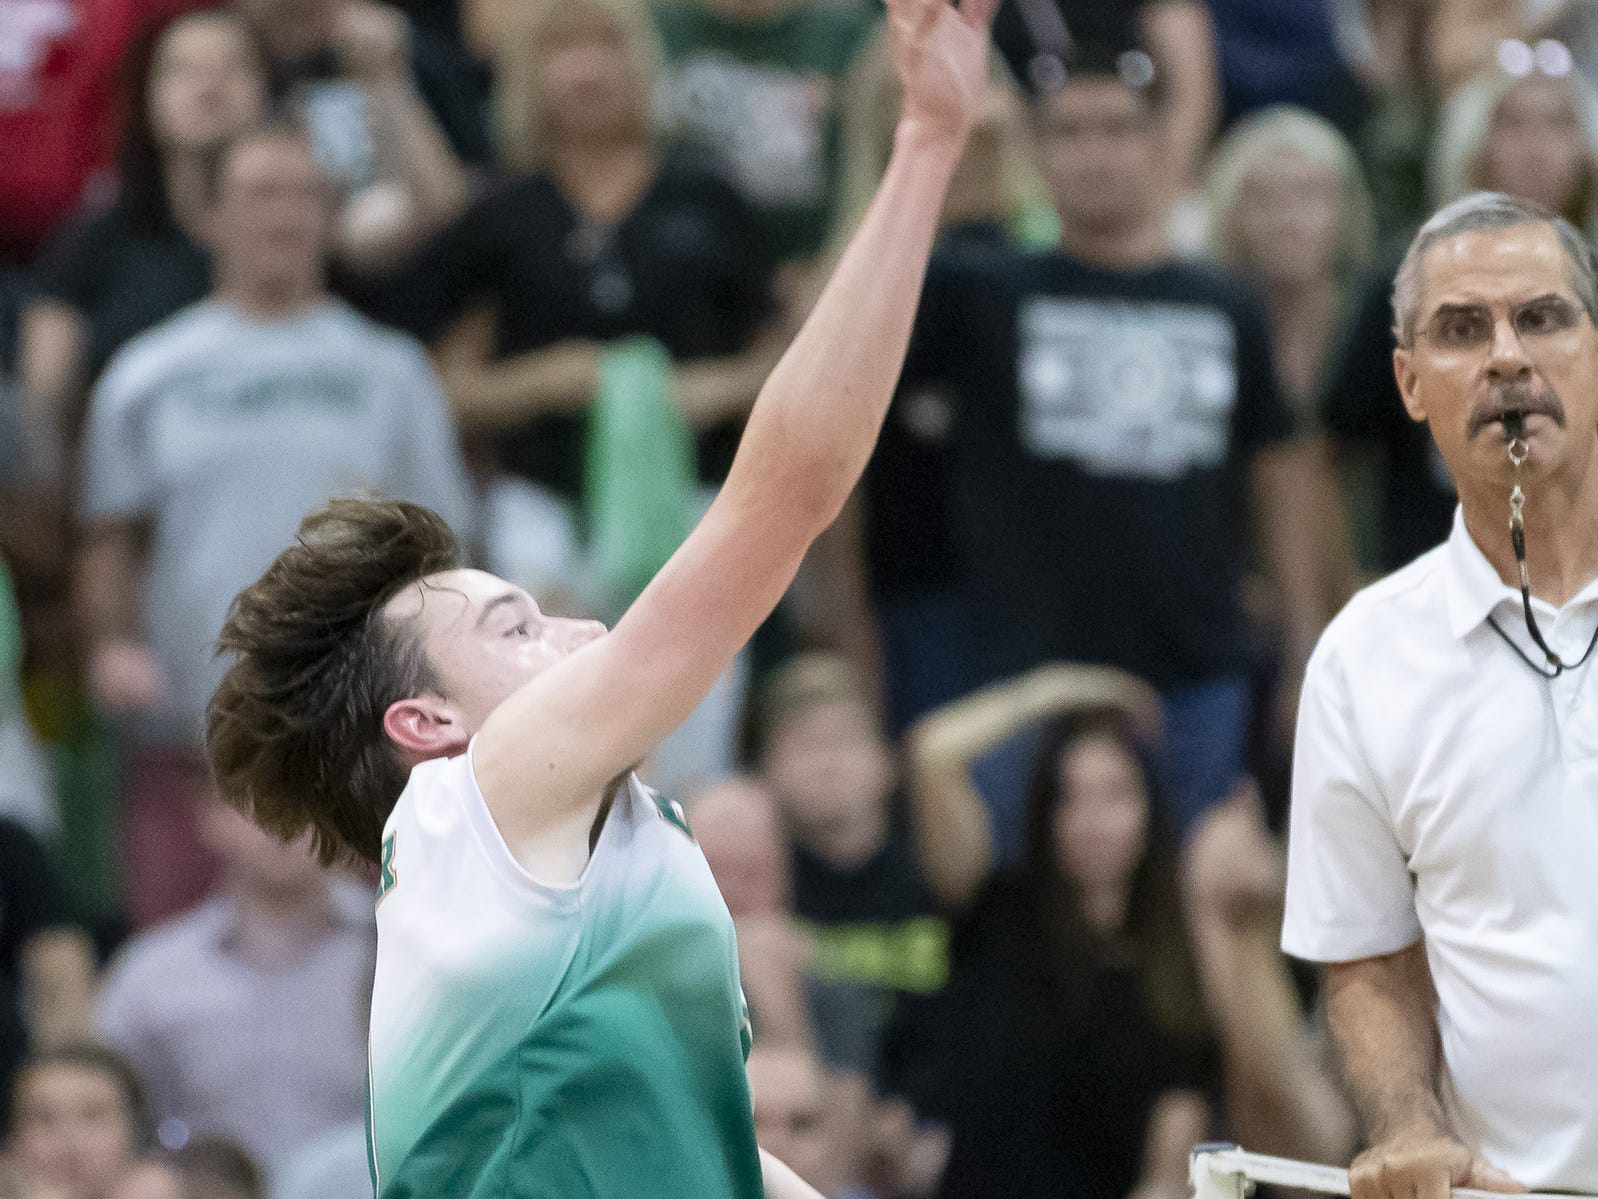 Junior outside hitter Jesse Lowder (9) of the Campo Verde Coyotes sets during the 5A Boys Volleyball State Championships against the Tucson Mountain View Mountain Lions at Higley High School on Saturday, May 11, 2019 in Gilbert, Arizona.